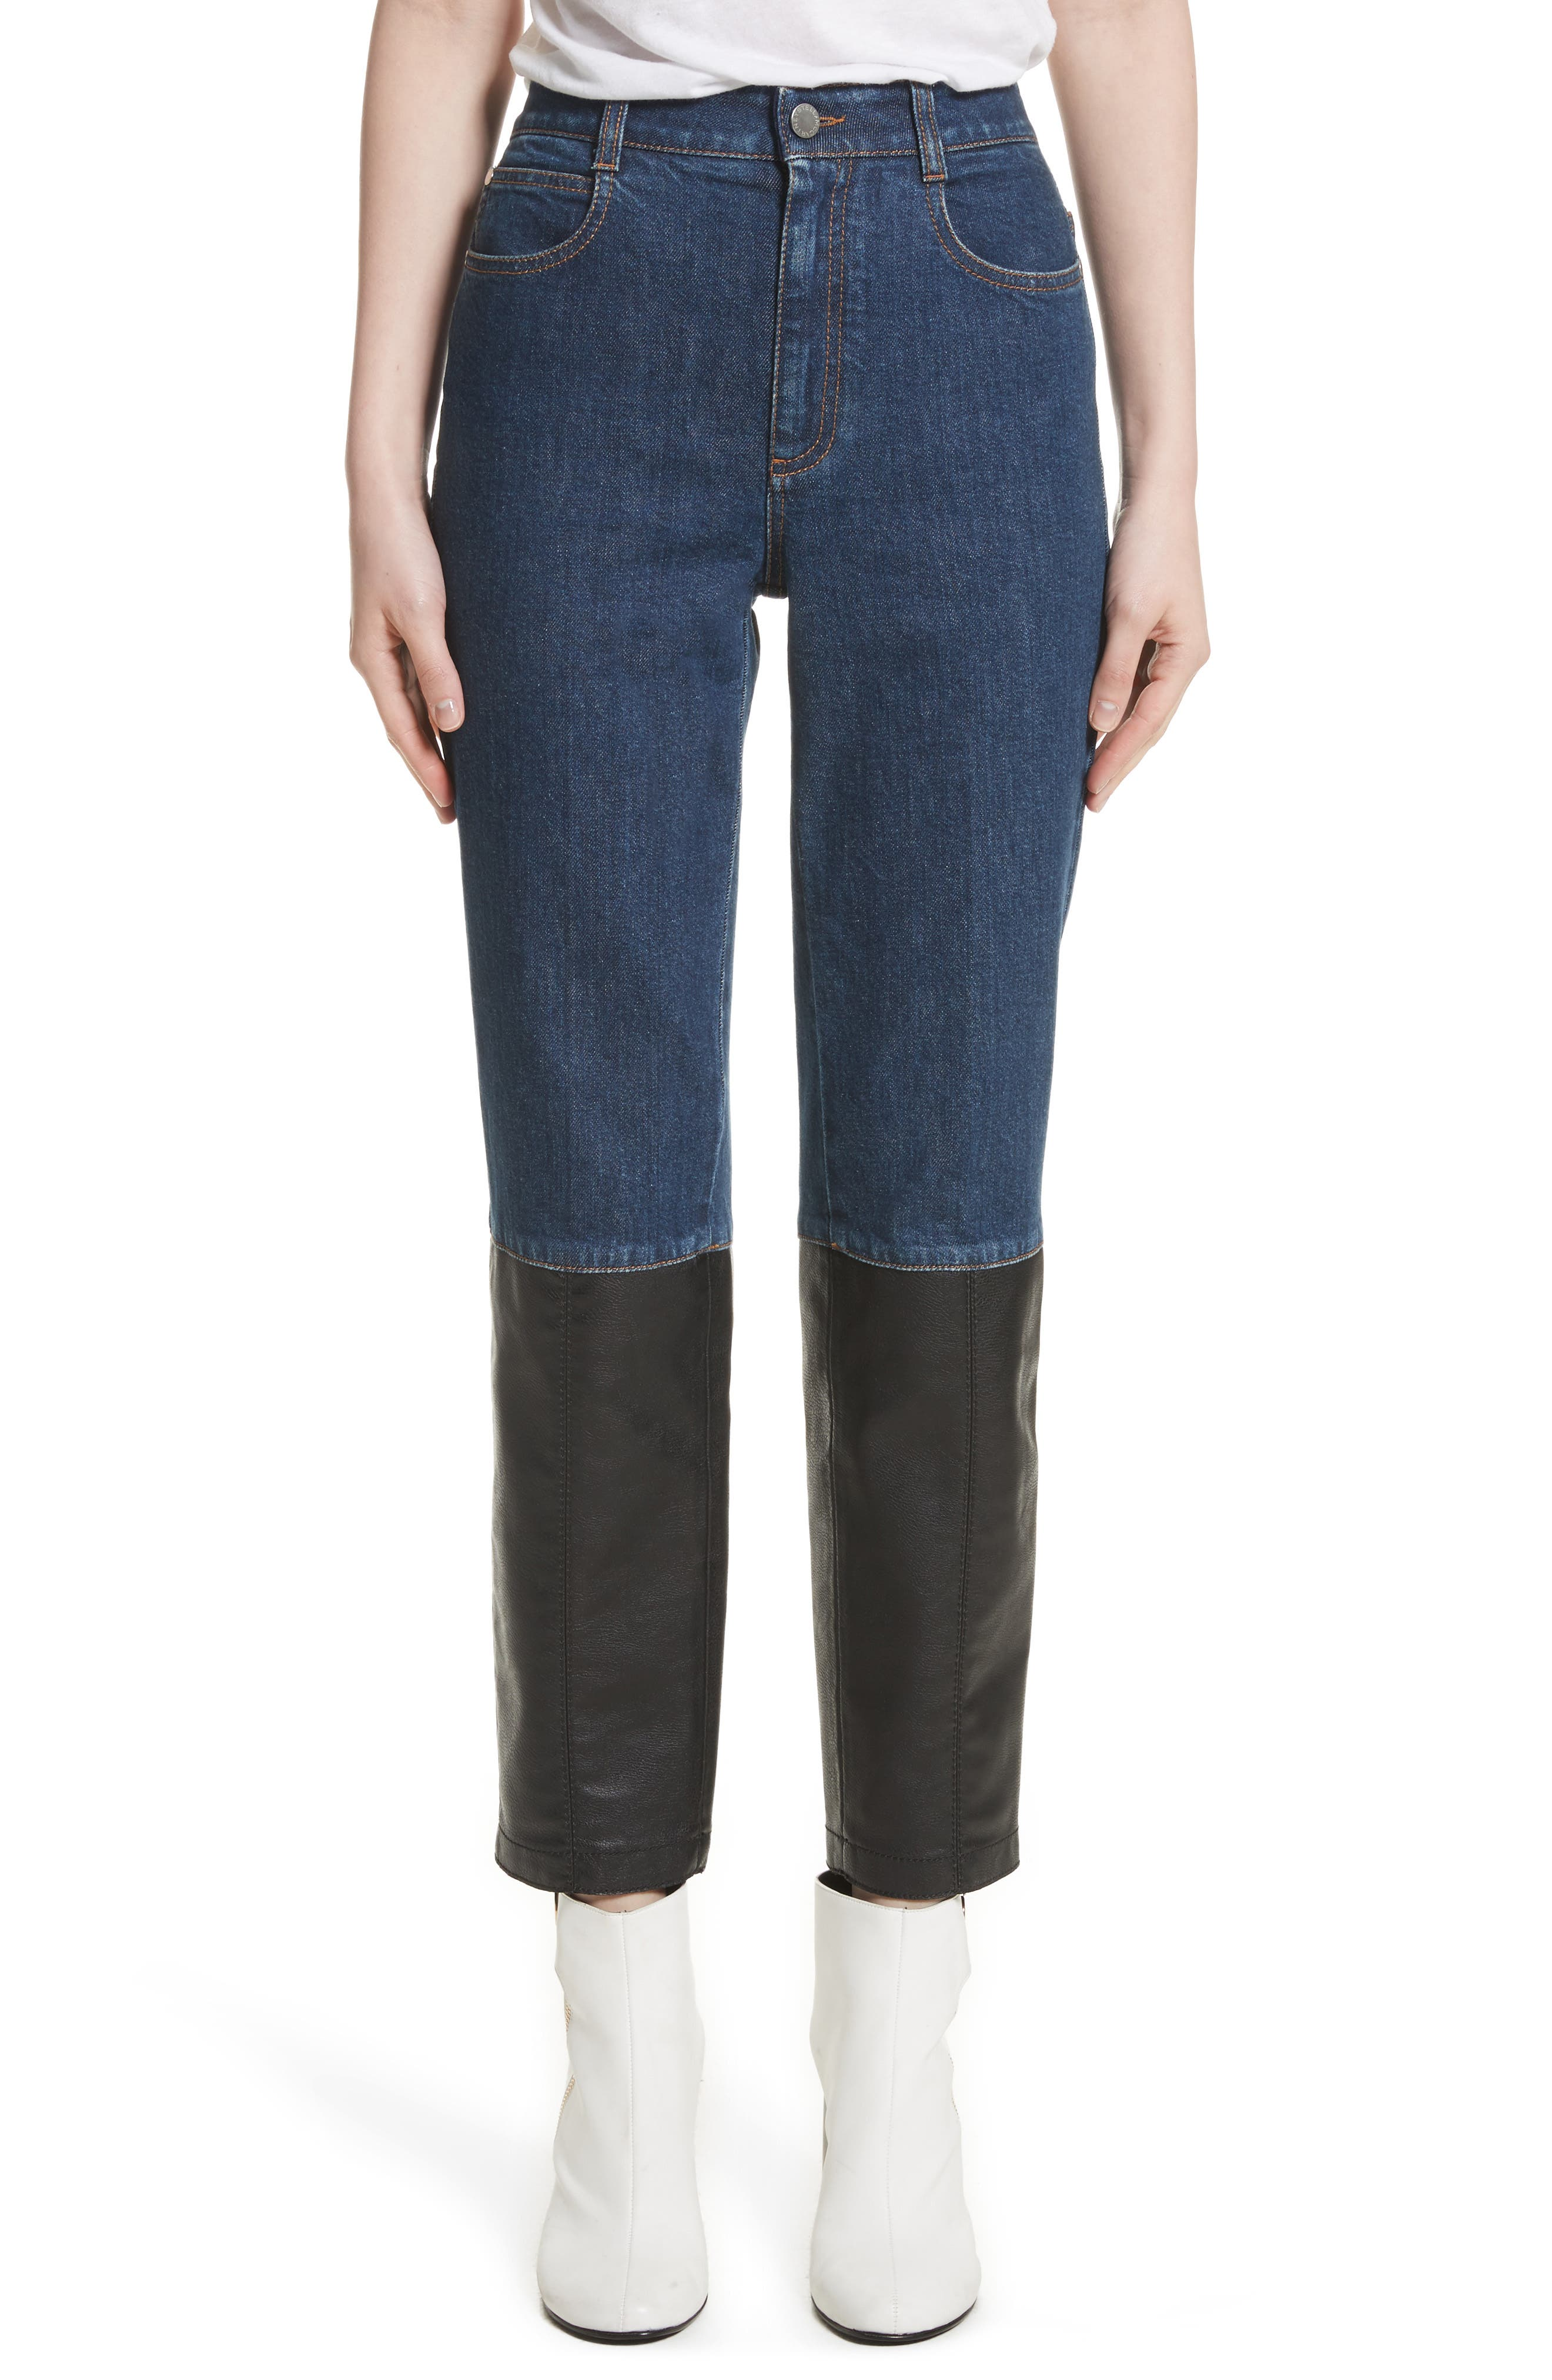 Alter Leather Trim High Waist Straight Leg Jeans,                         Main,                         color, Blue Jeans